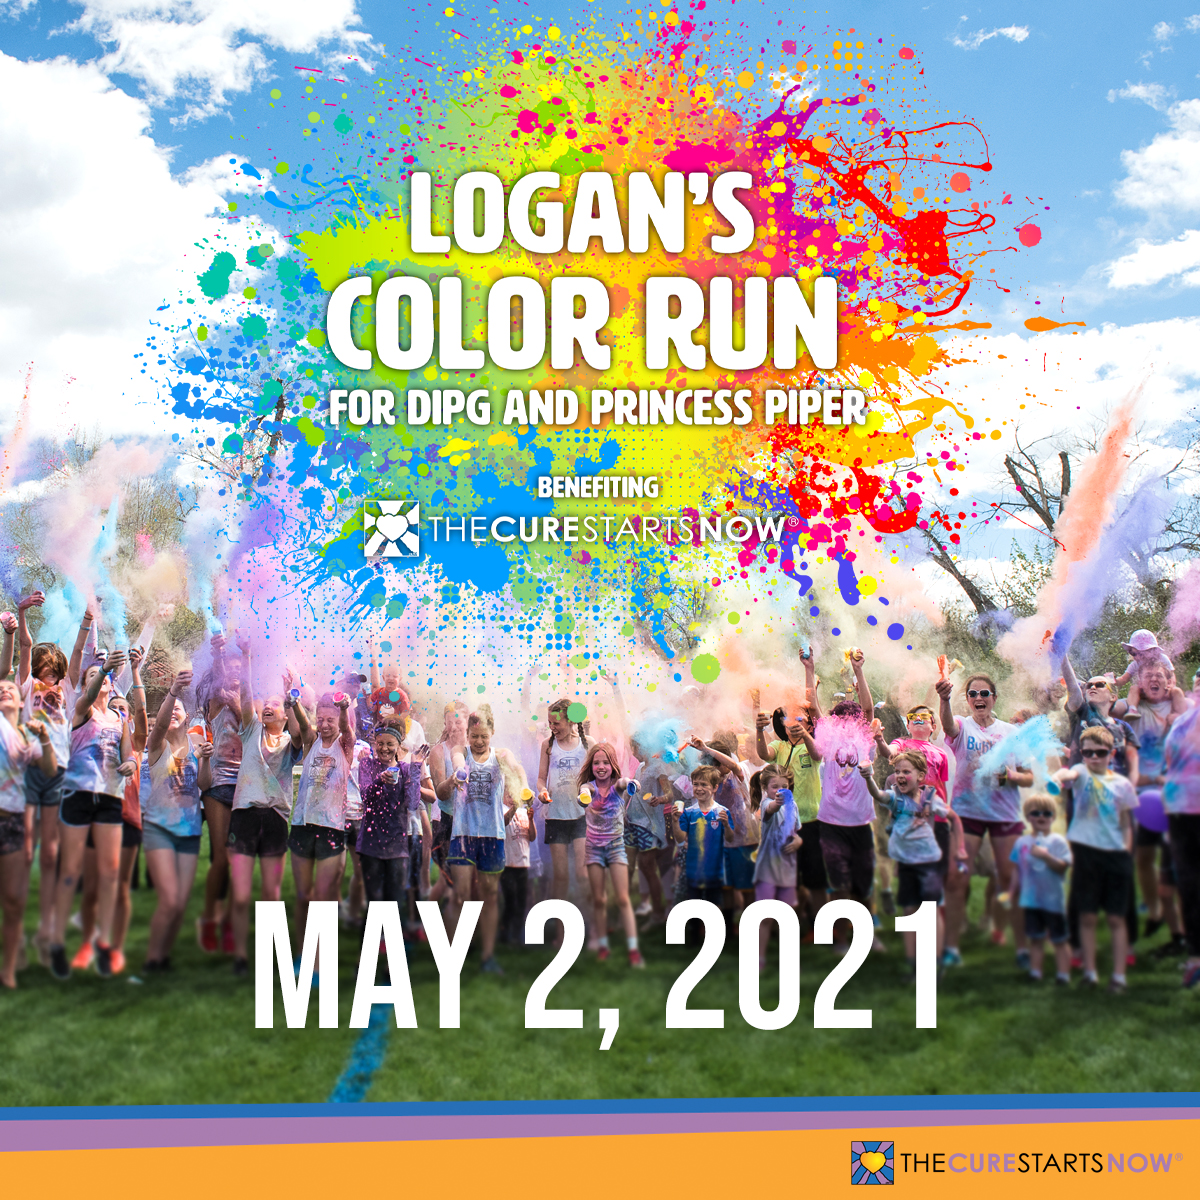 Logan's Color Run for DIPG and Princess Piper